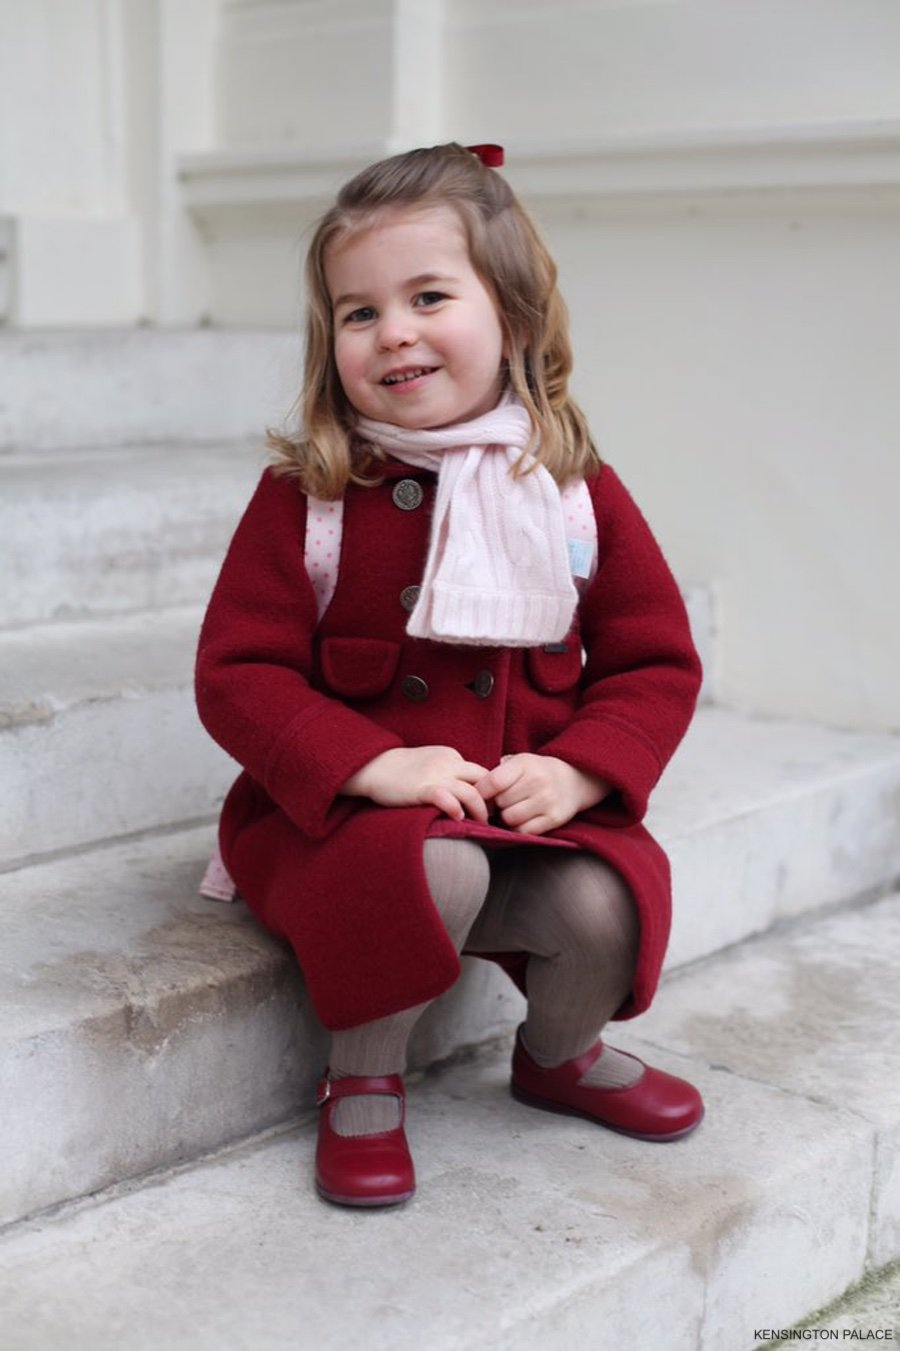 Princess Charlotte - photograph taken by the Duchess of Cambridge Kate Middleton